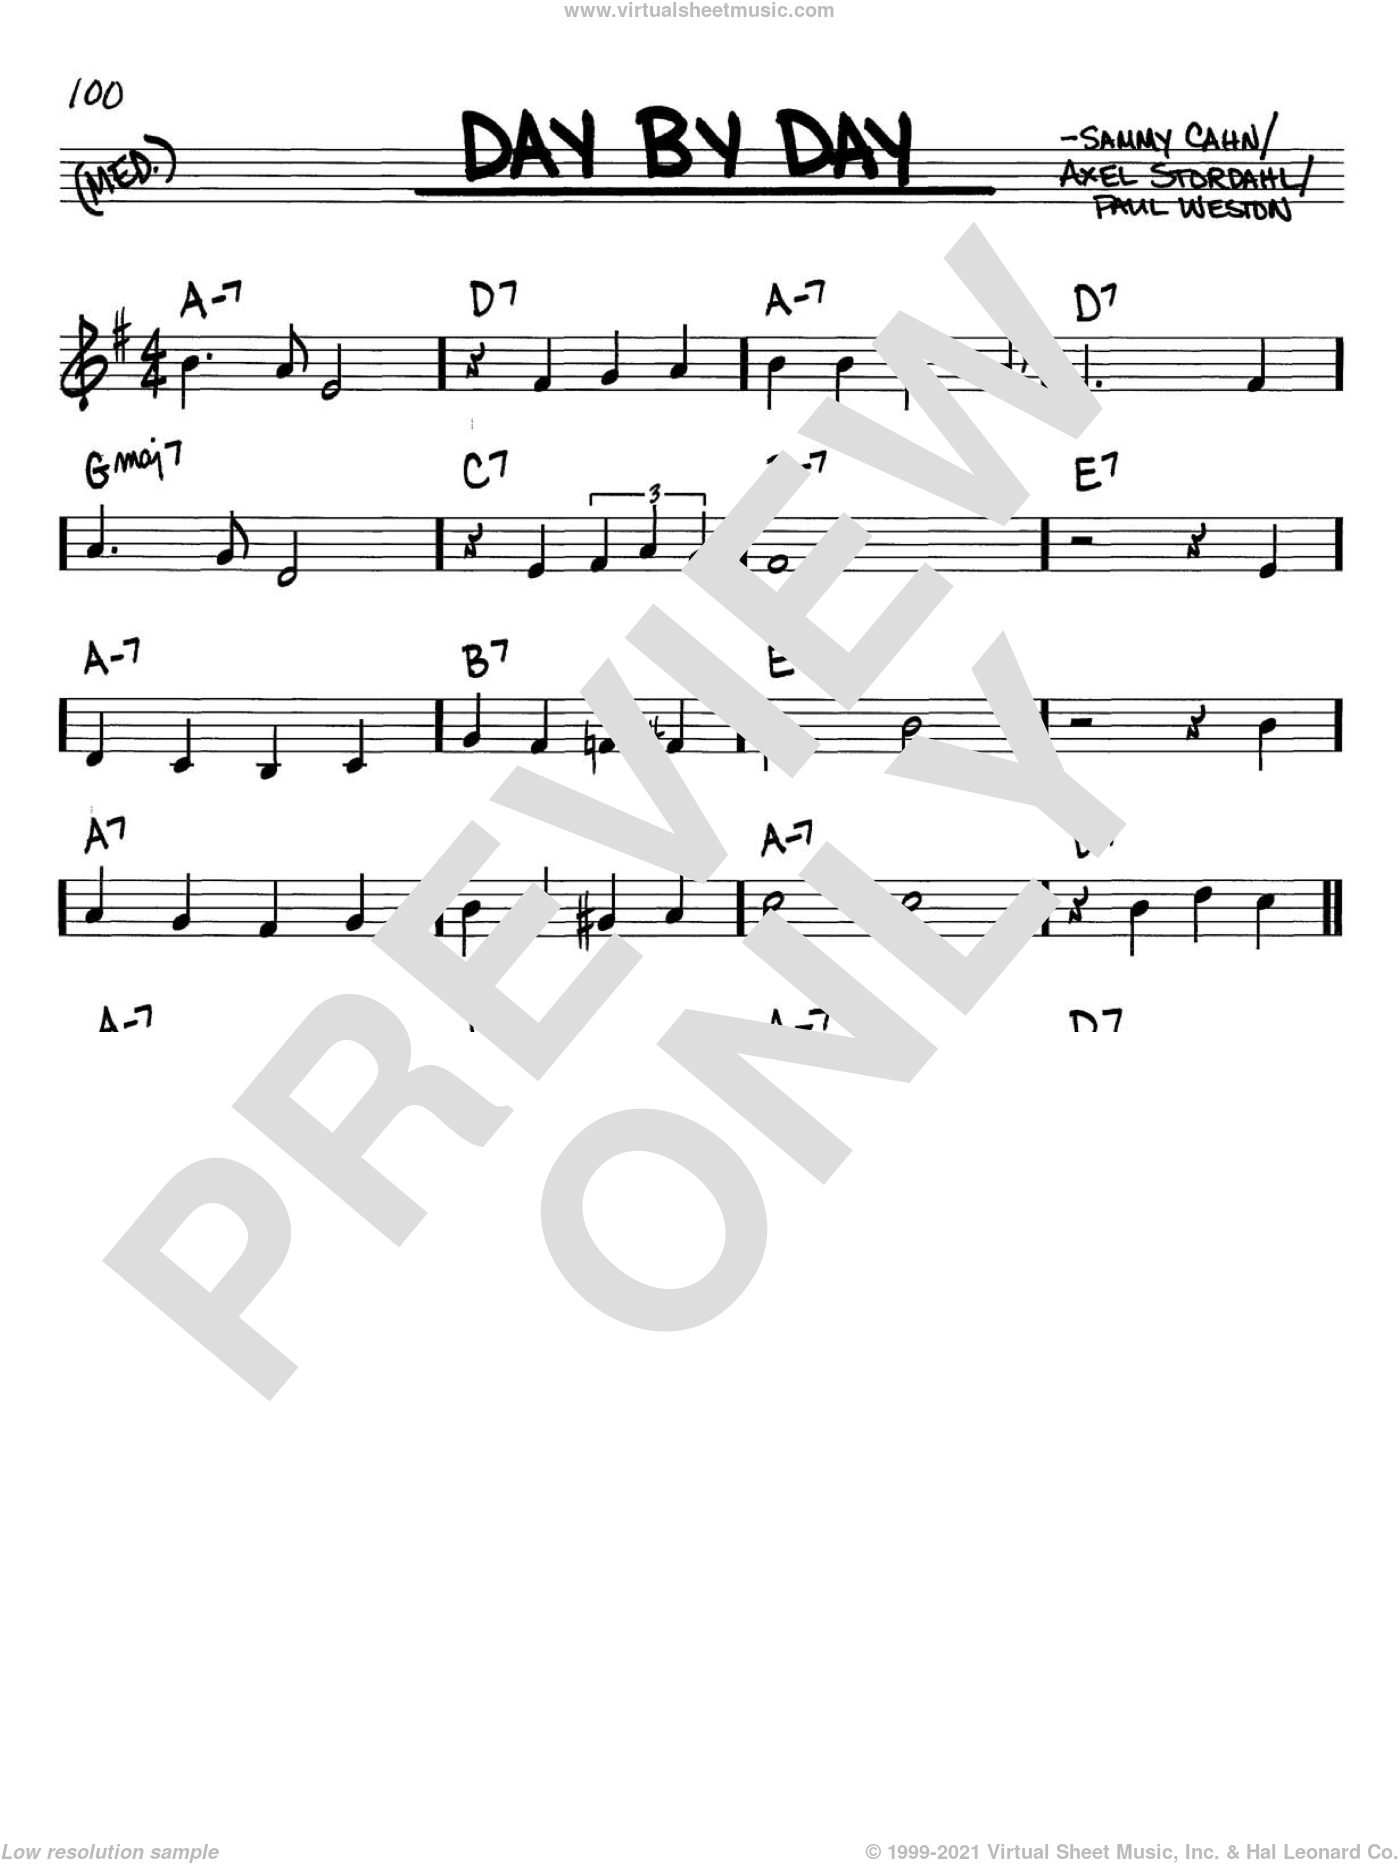 Day By Day sheet music for voice and other instruments (C) by Sammy Cahn, Axel Stordahl and Paul Weston. Score Image Preview.